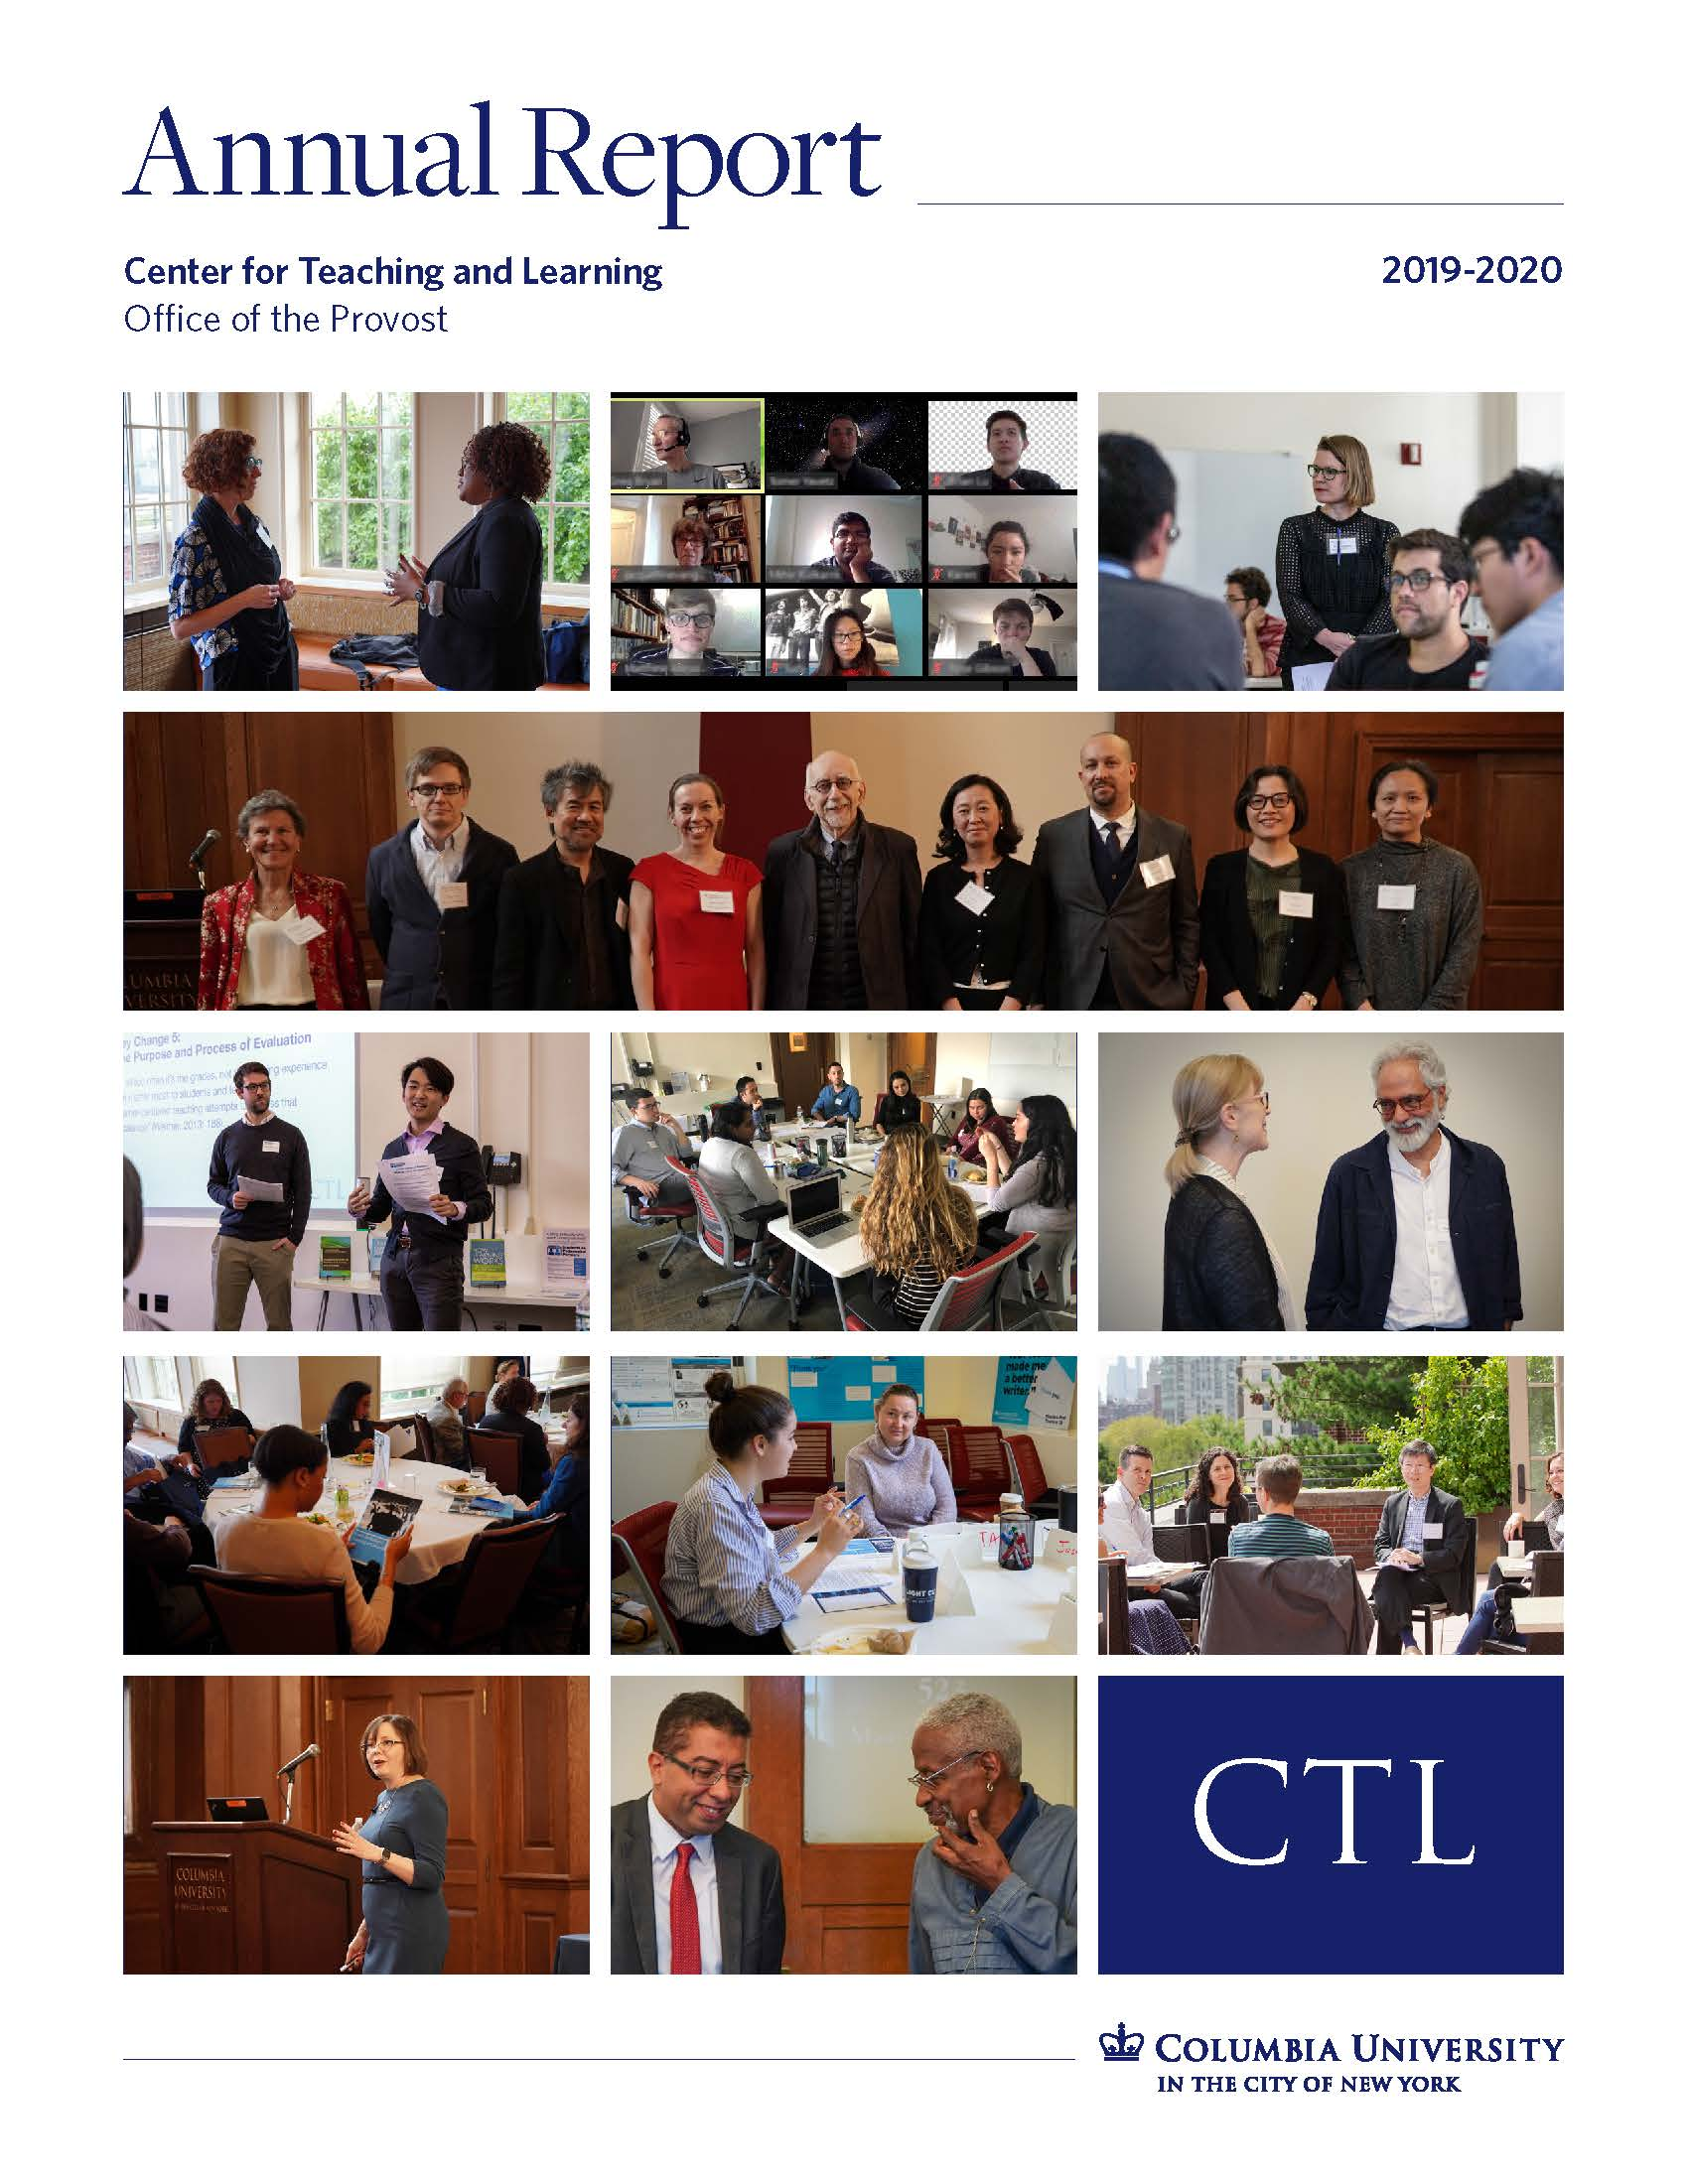 Ph.D. Student, Miguel Ángel Garrido, is spotlighted in the annual report of Center for Teaching and Learning